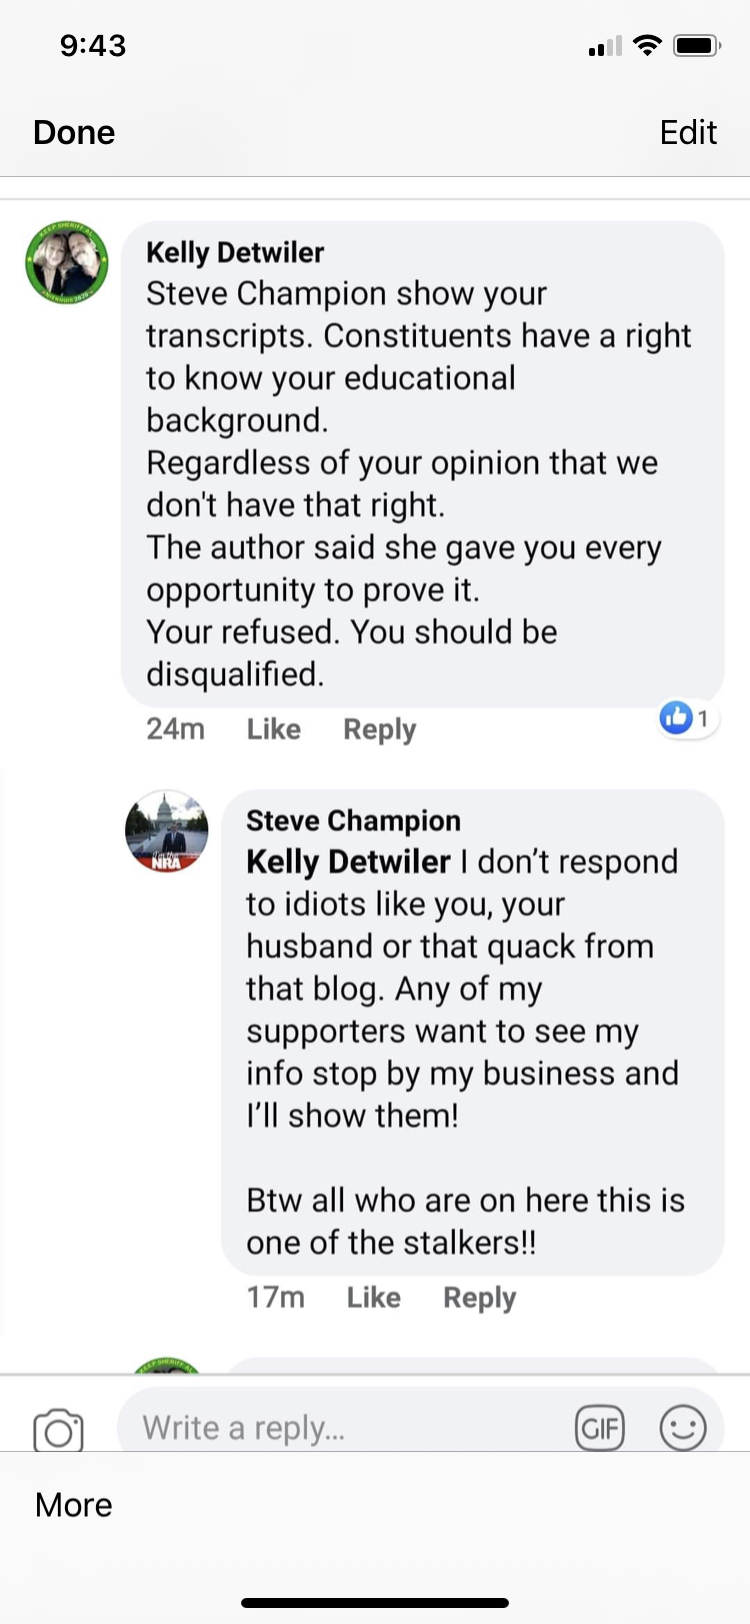 Steve Champion's disrespectful response to a constituent asking questions.